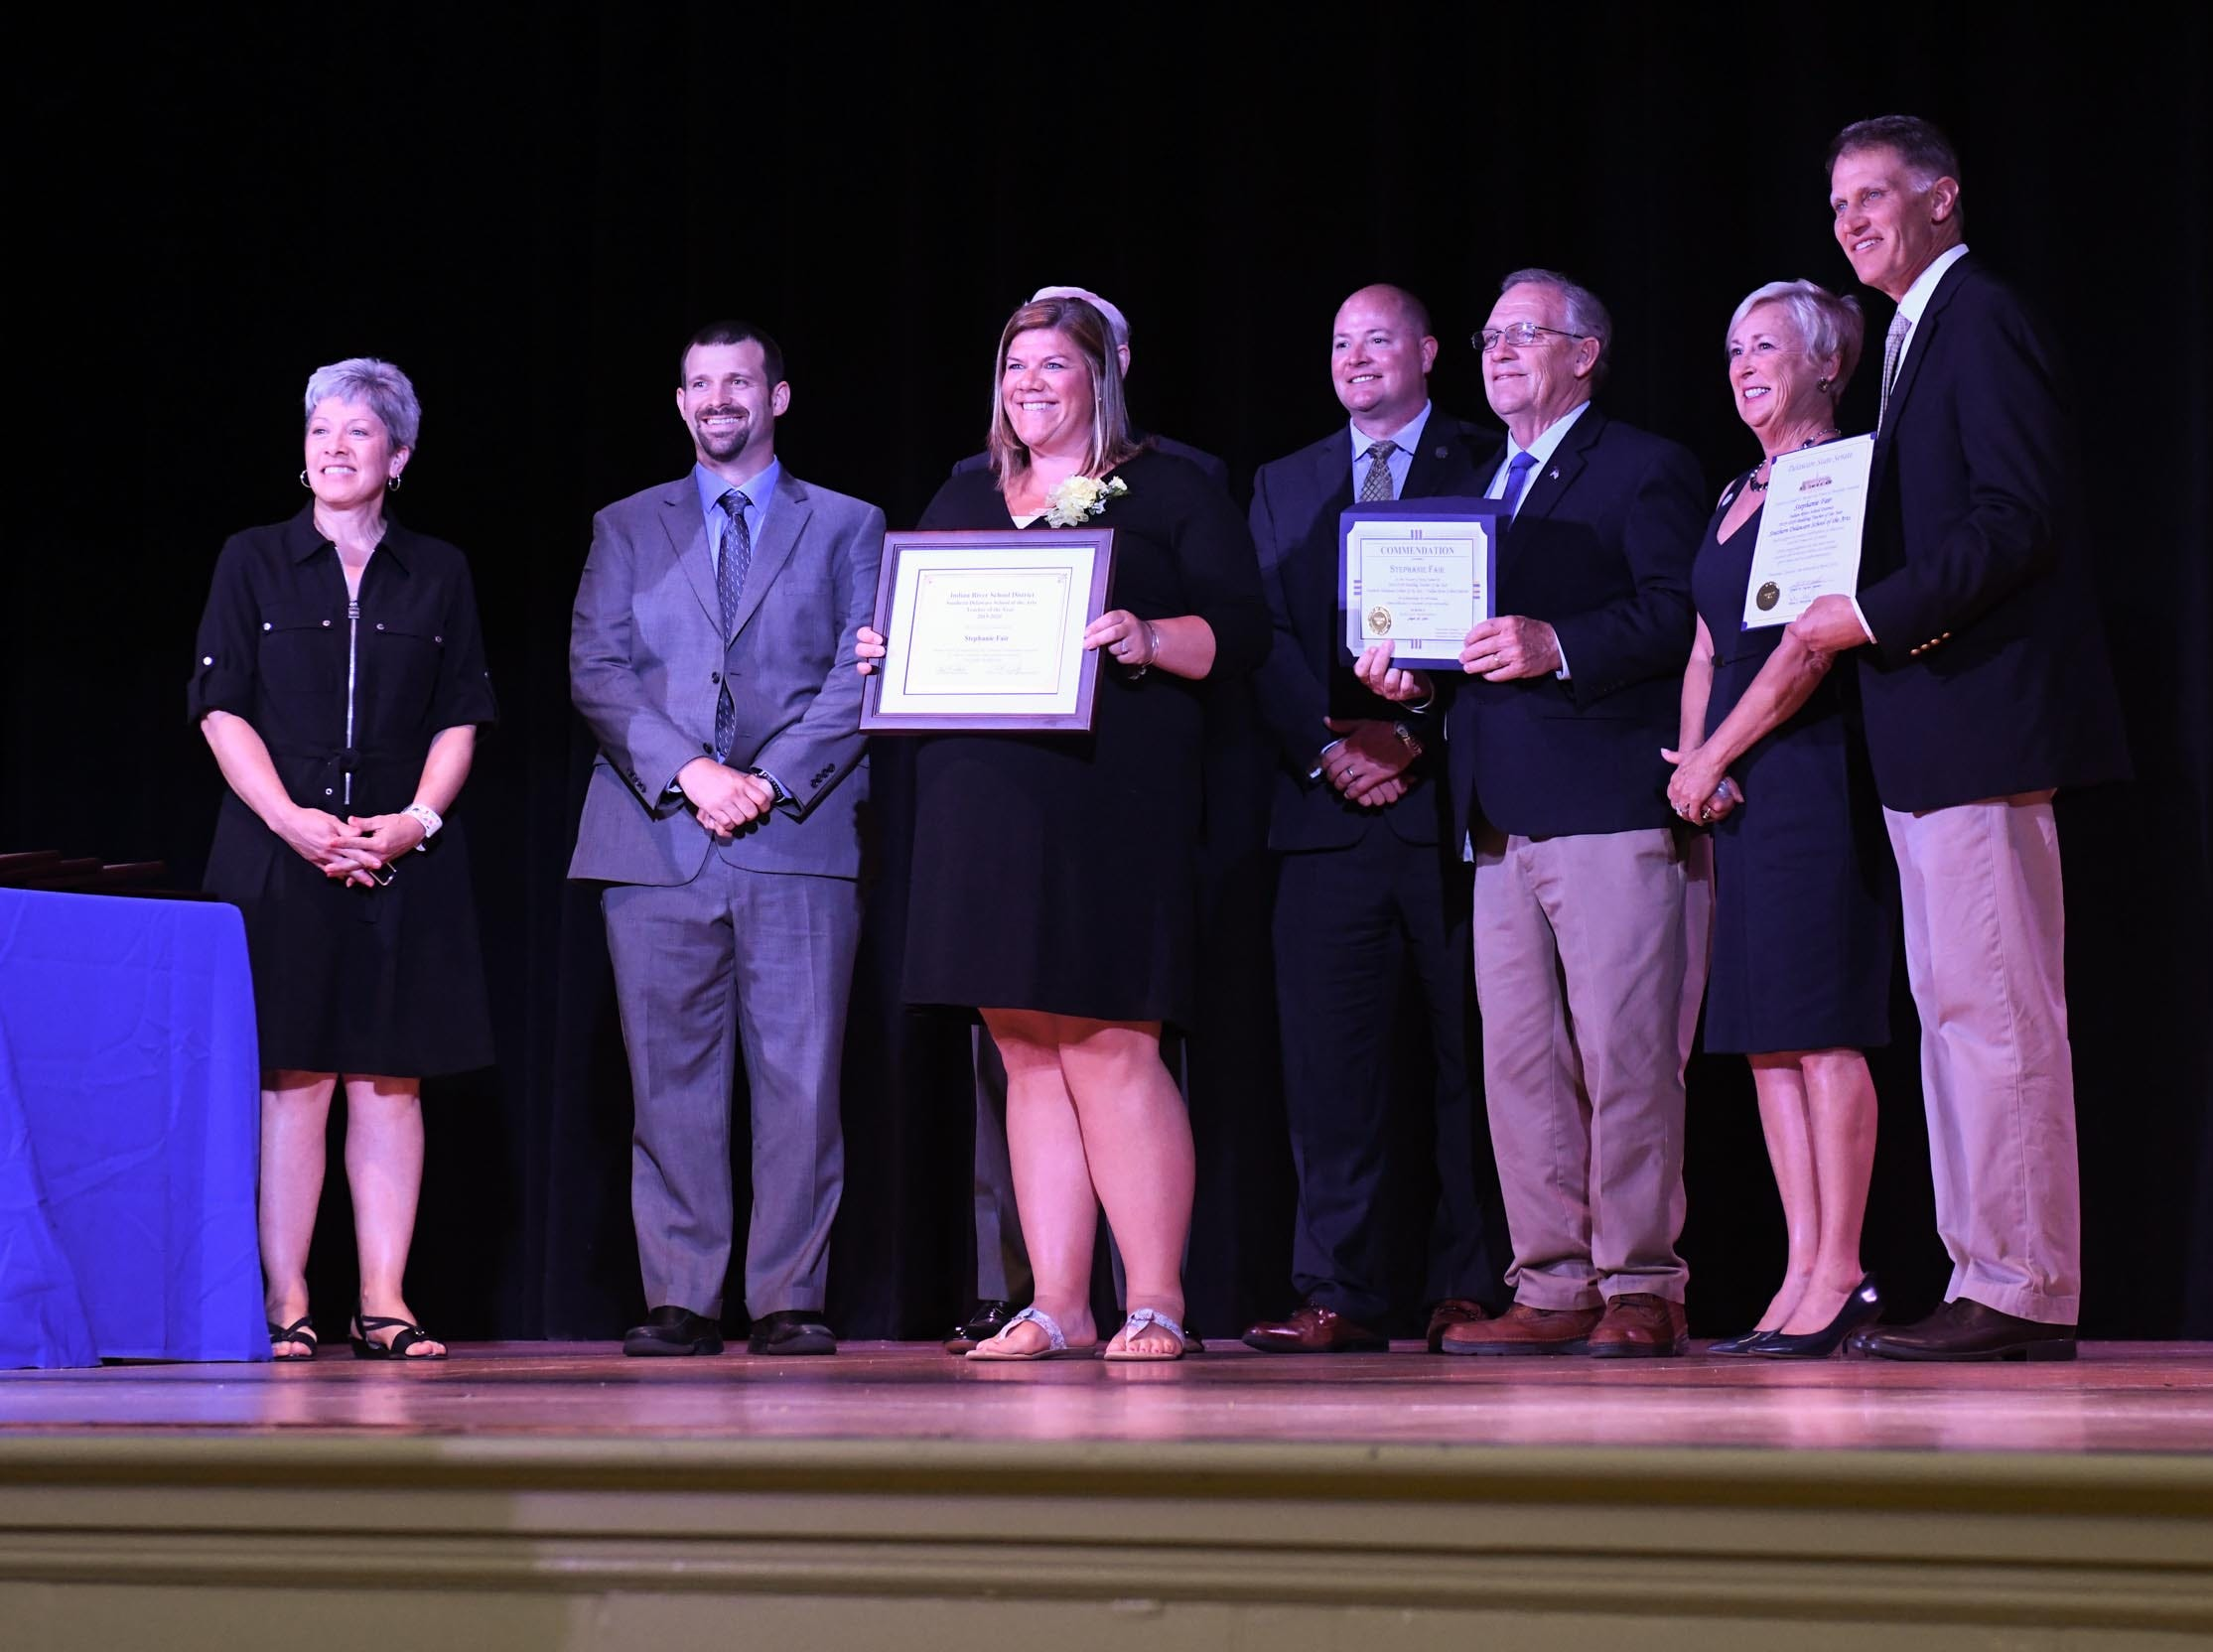 Stephanie Fair, Southern Delaware School of the Arts, receives her award for the teacher of the year at her school on Tuesday, April 30, 2019.